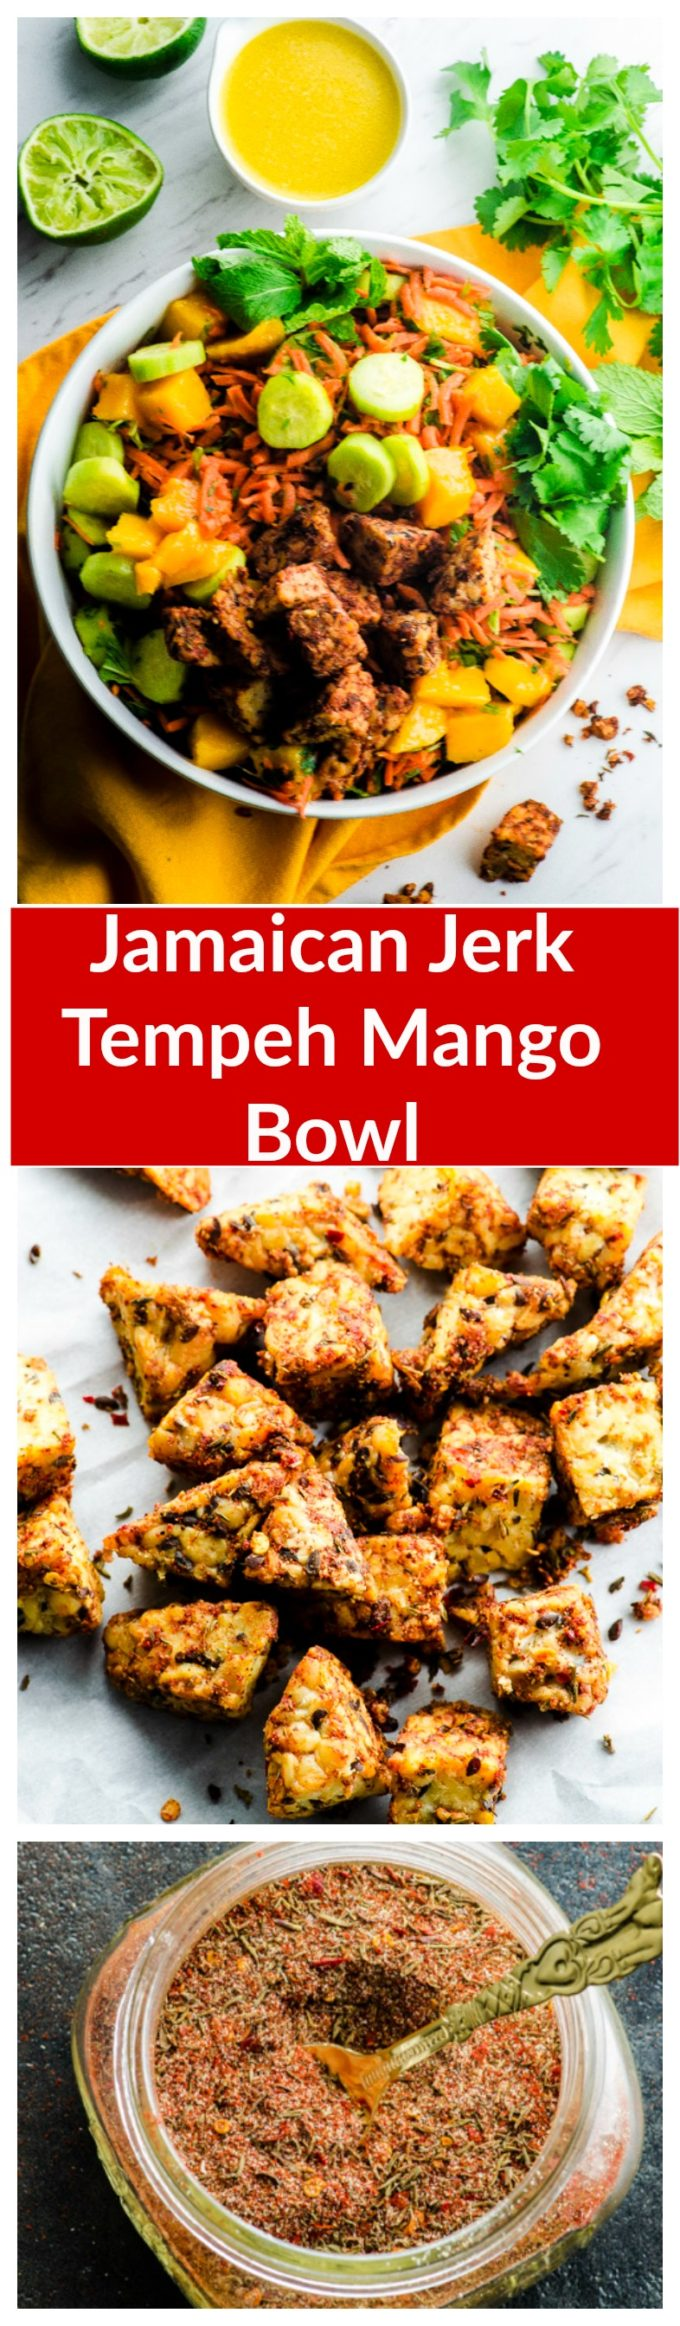 amaican Jerk Tempeh Mango Bowl. A light, spice and flavor filled dish that has the perfect balance of sweet, tangy and spicy.